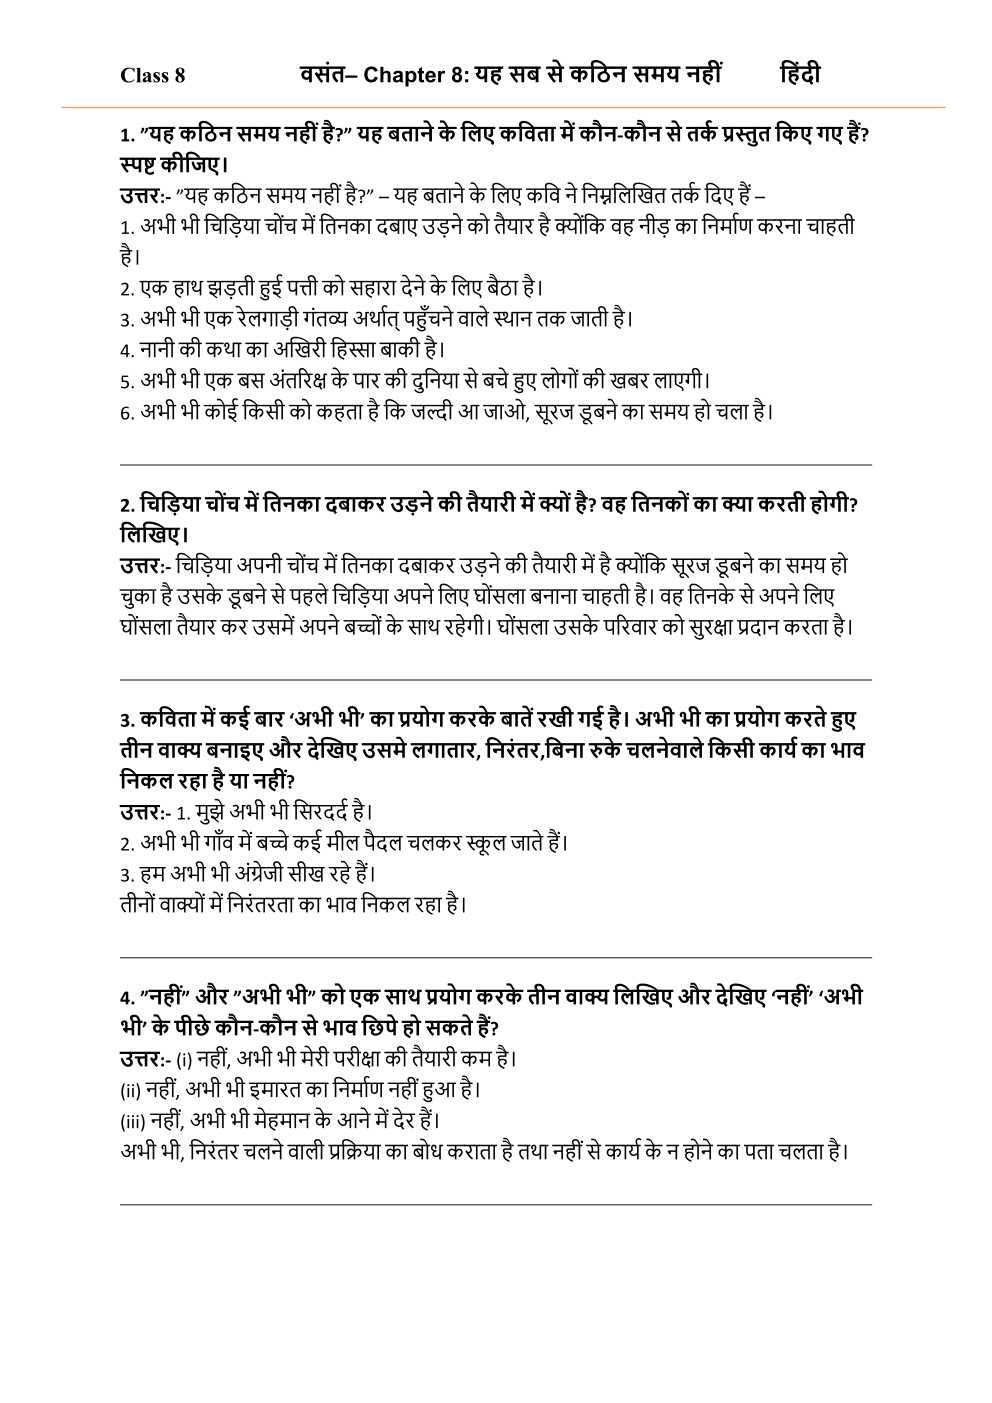 NCERT Solutions For Class 8 Hindi Vasant Chapter 8